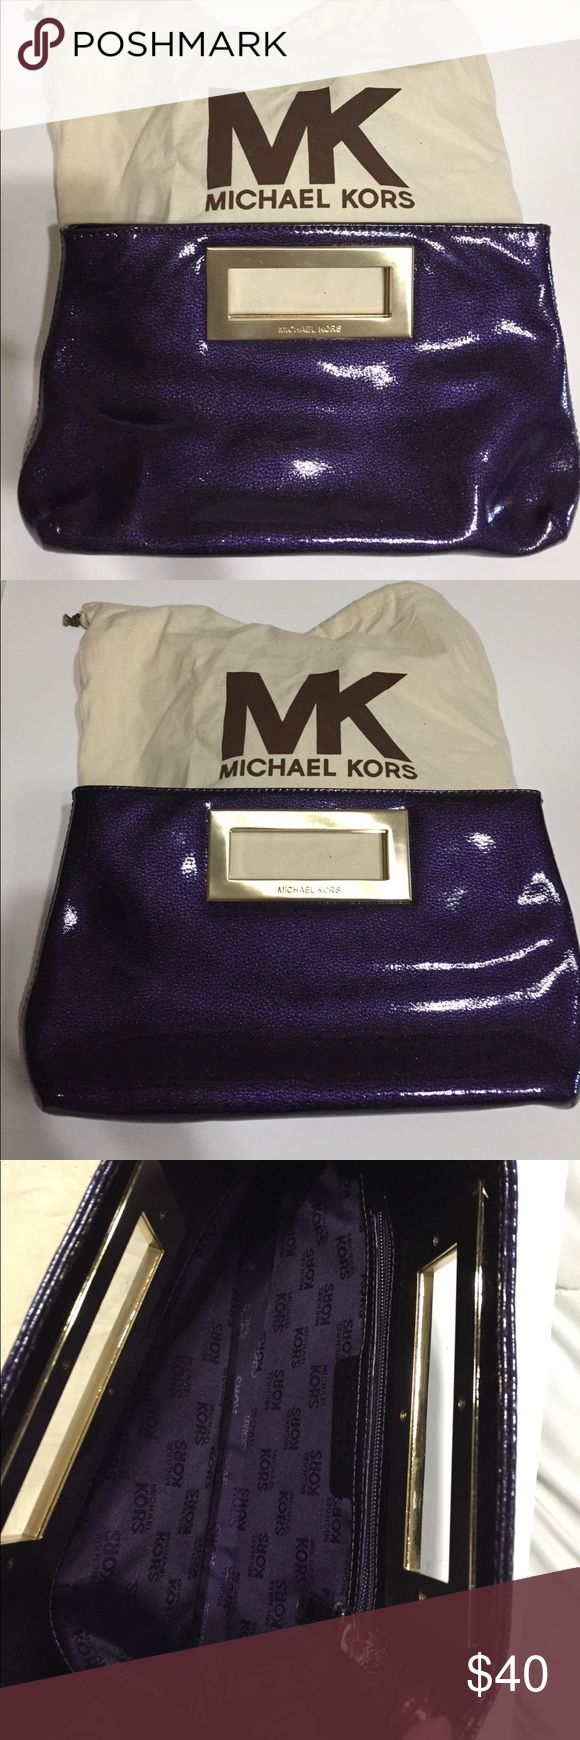 Michael Kors Purple Clutch Michael Kors Purple Clutch w/champagne gold hardware, one zippered pocket inside, & snap enclosures.  There's a very teeny tiny white spot as shown in picture #7 & a tiny scratch on handle as shown in picture #8.  Otherwise the clutch is like new.  Price is firm. Michael Kors Bags Clutches & Wristlets